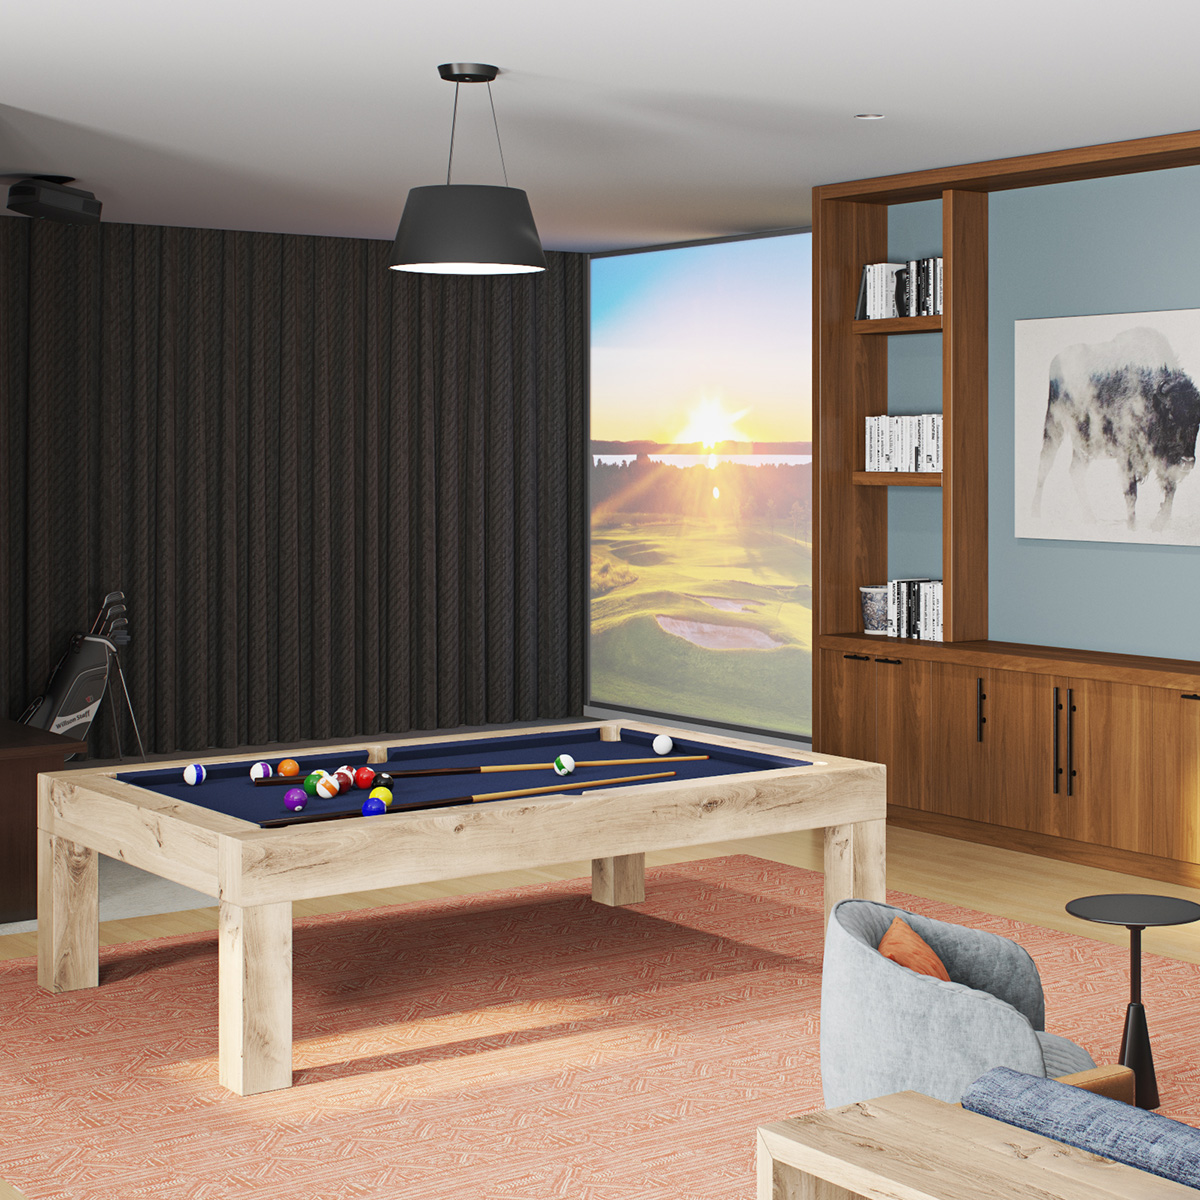 The Palmer Amenities - Golf Simulator and Billiards Table